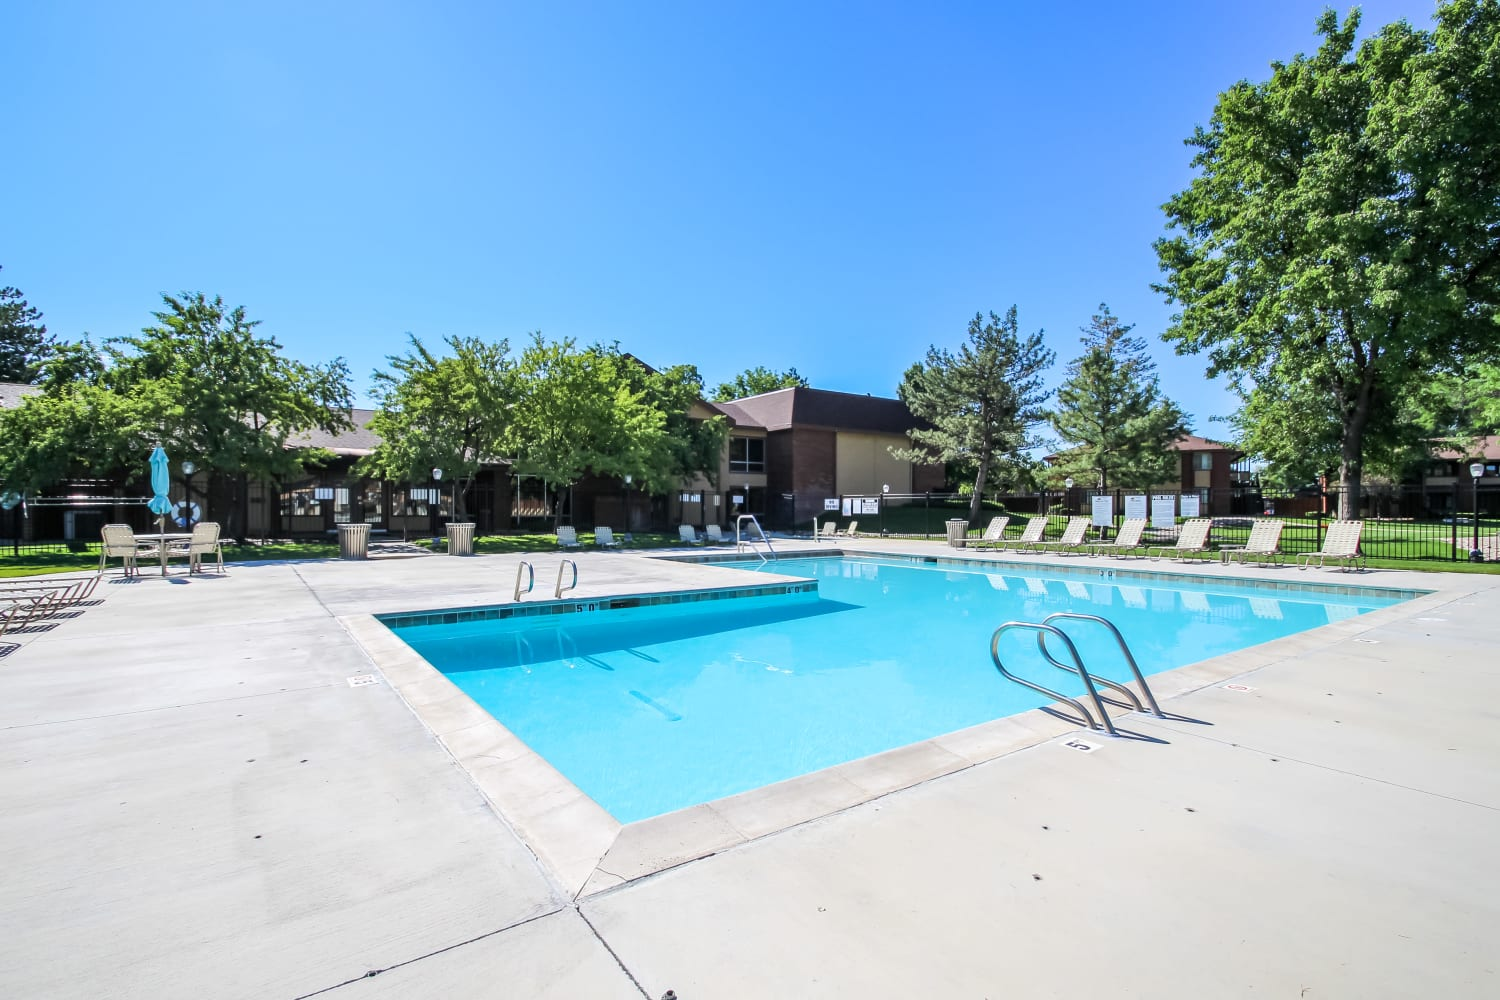 Swimming pool surrounded by trees at Wasatch Club Apartments in Midvale, Utah